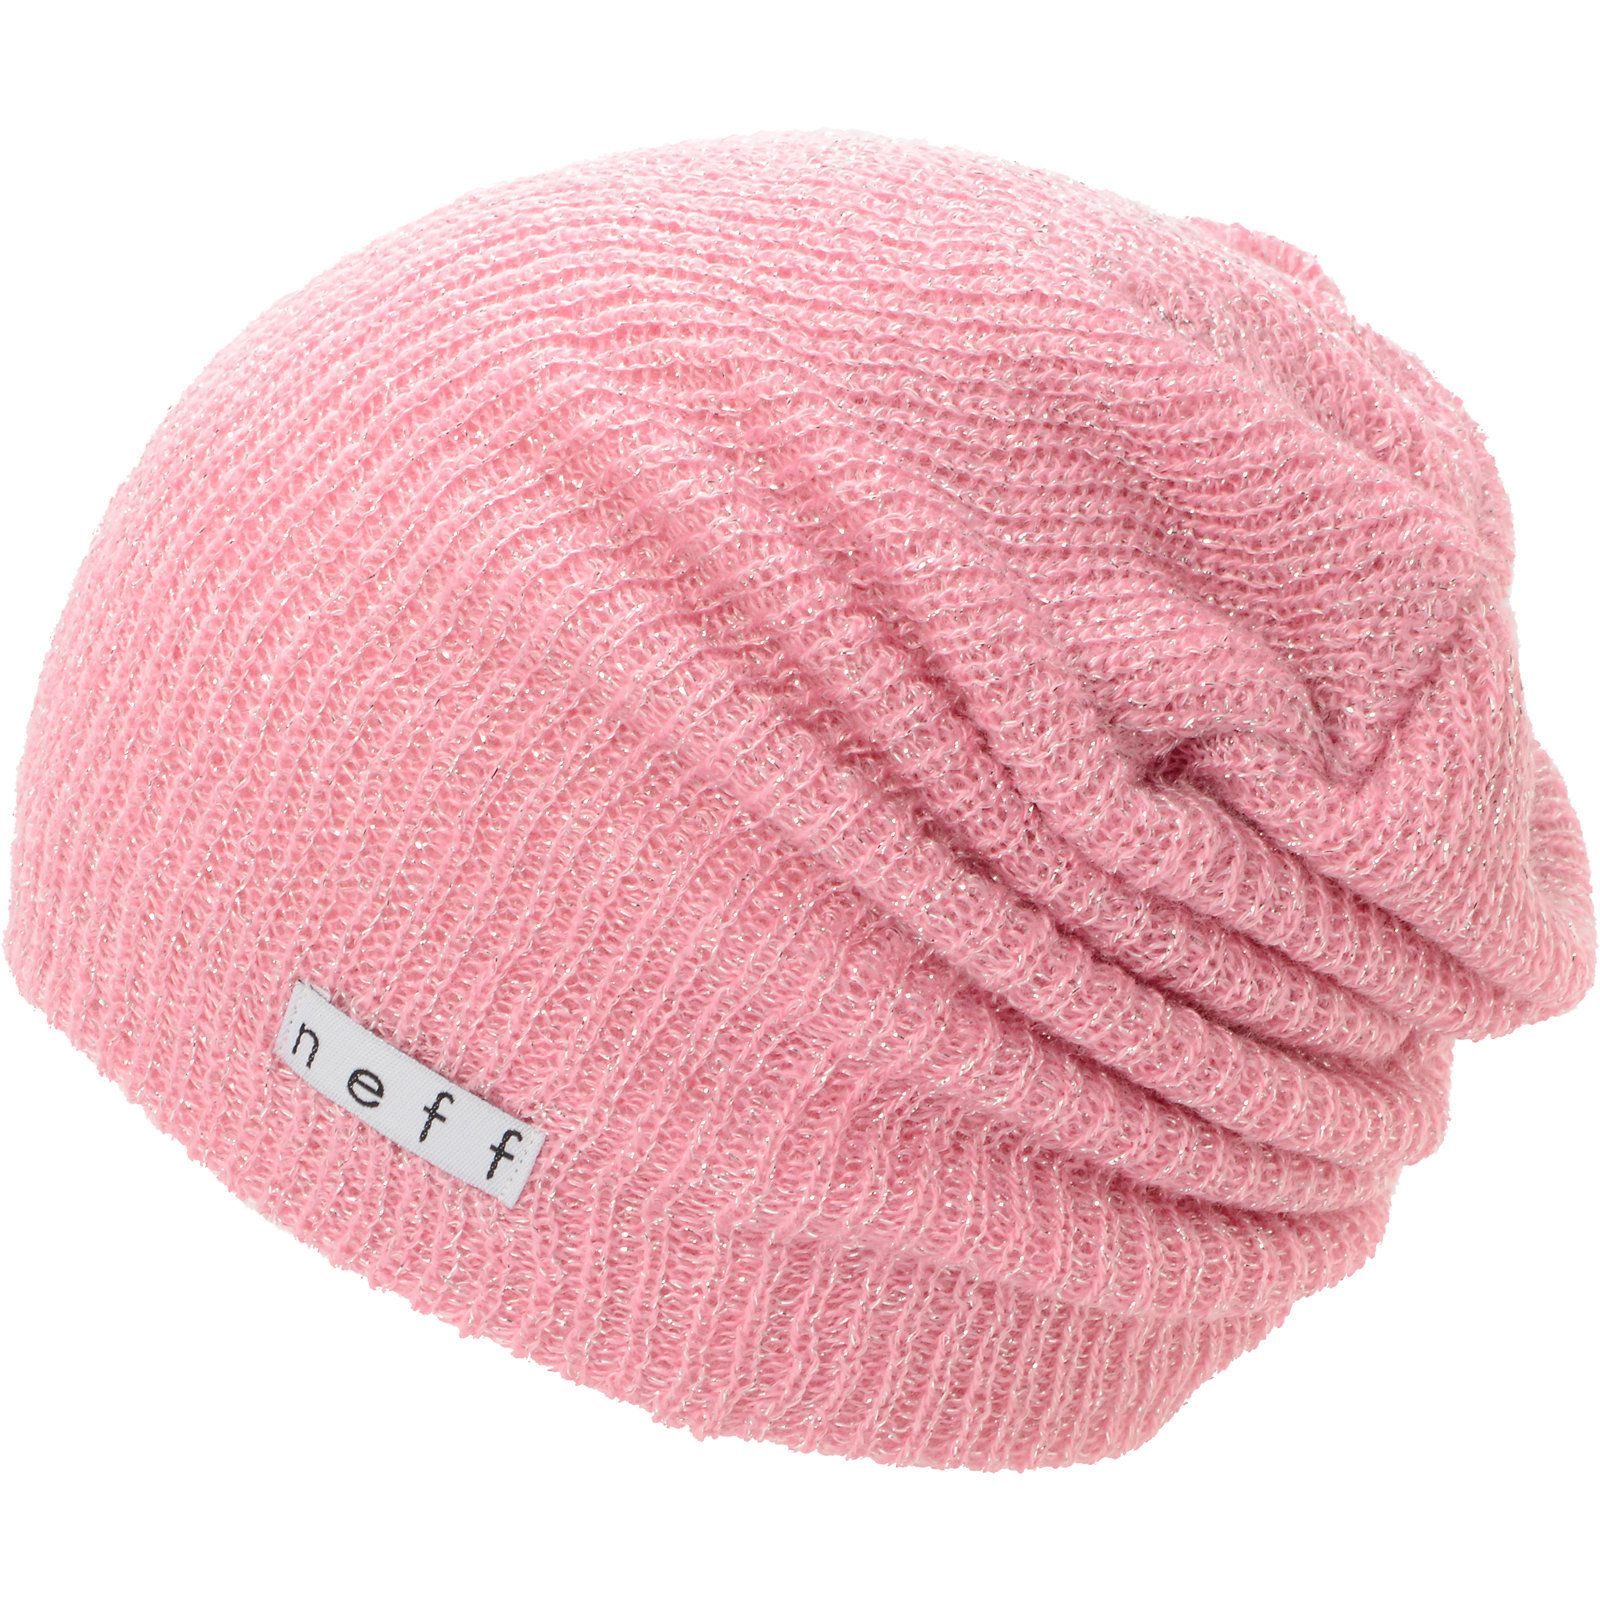 60c1fc7fb9f Neff Girls Daily Sparkle Pink Beanie at Zumiez   PDP